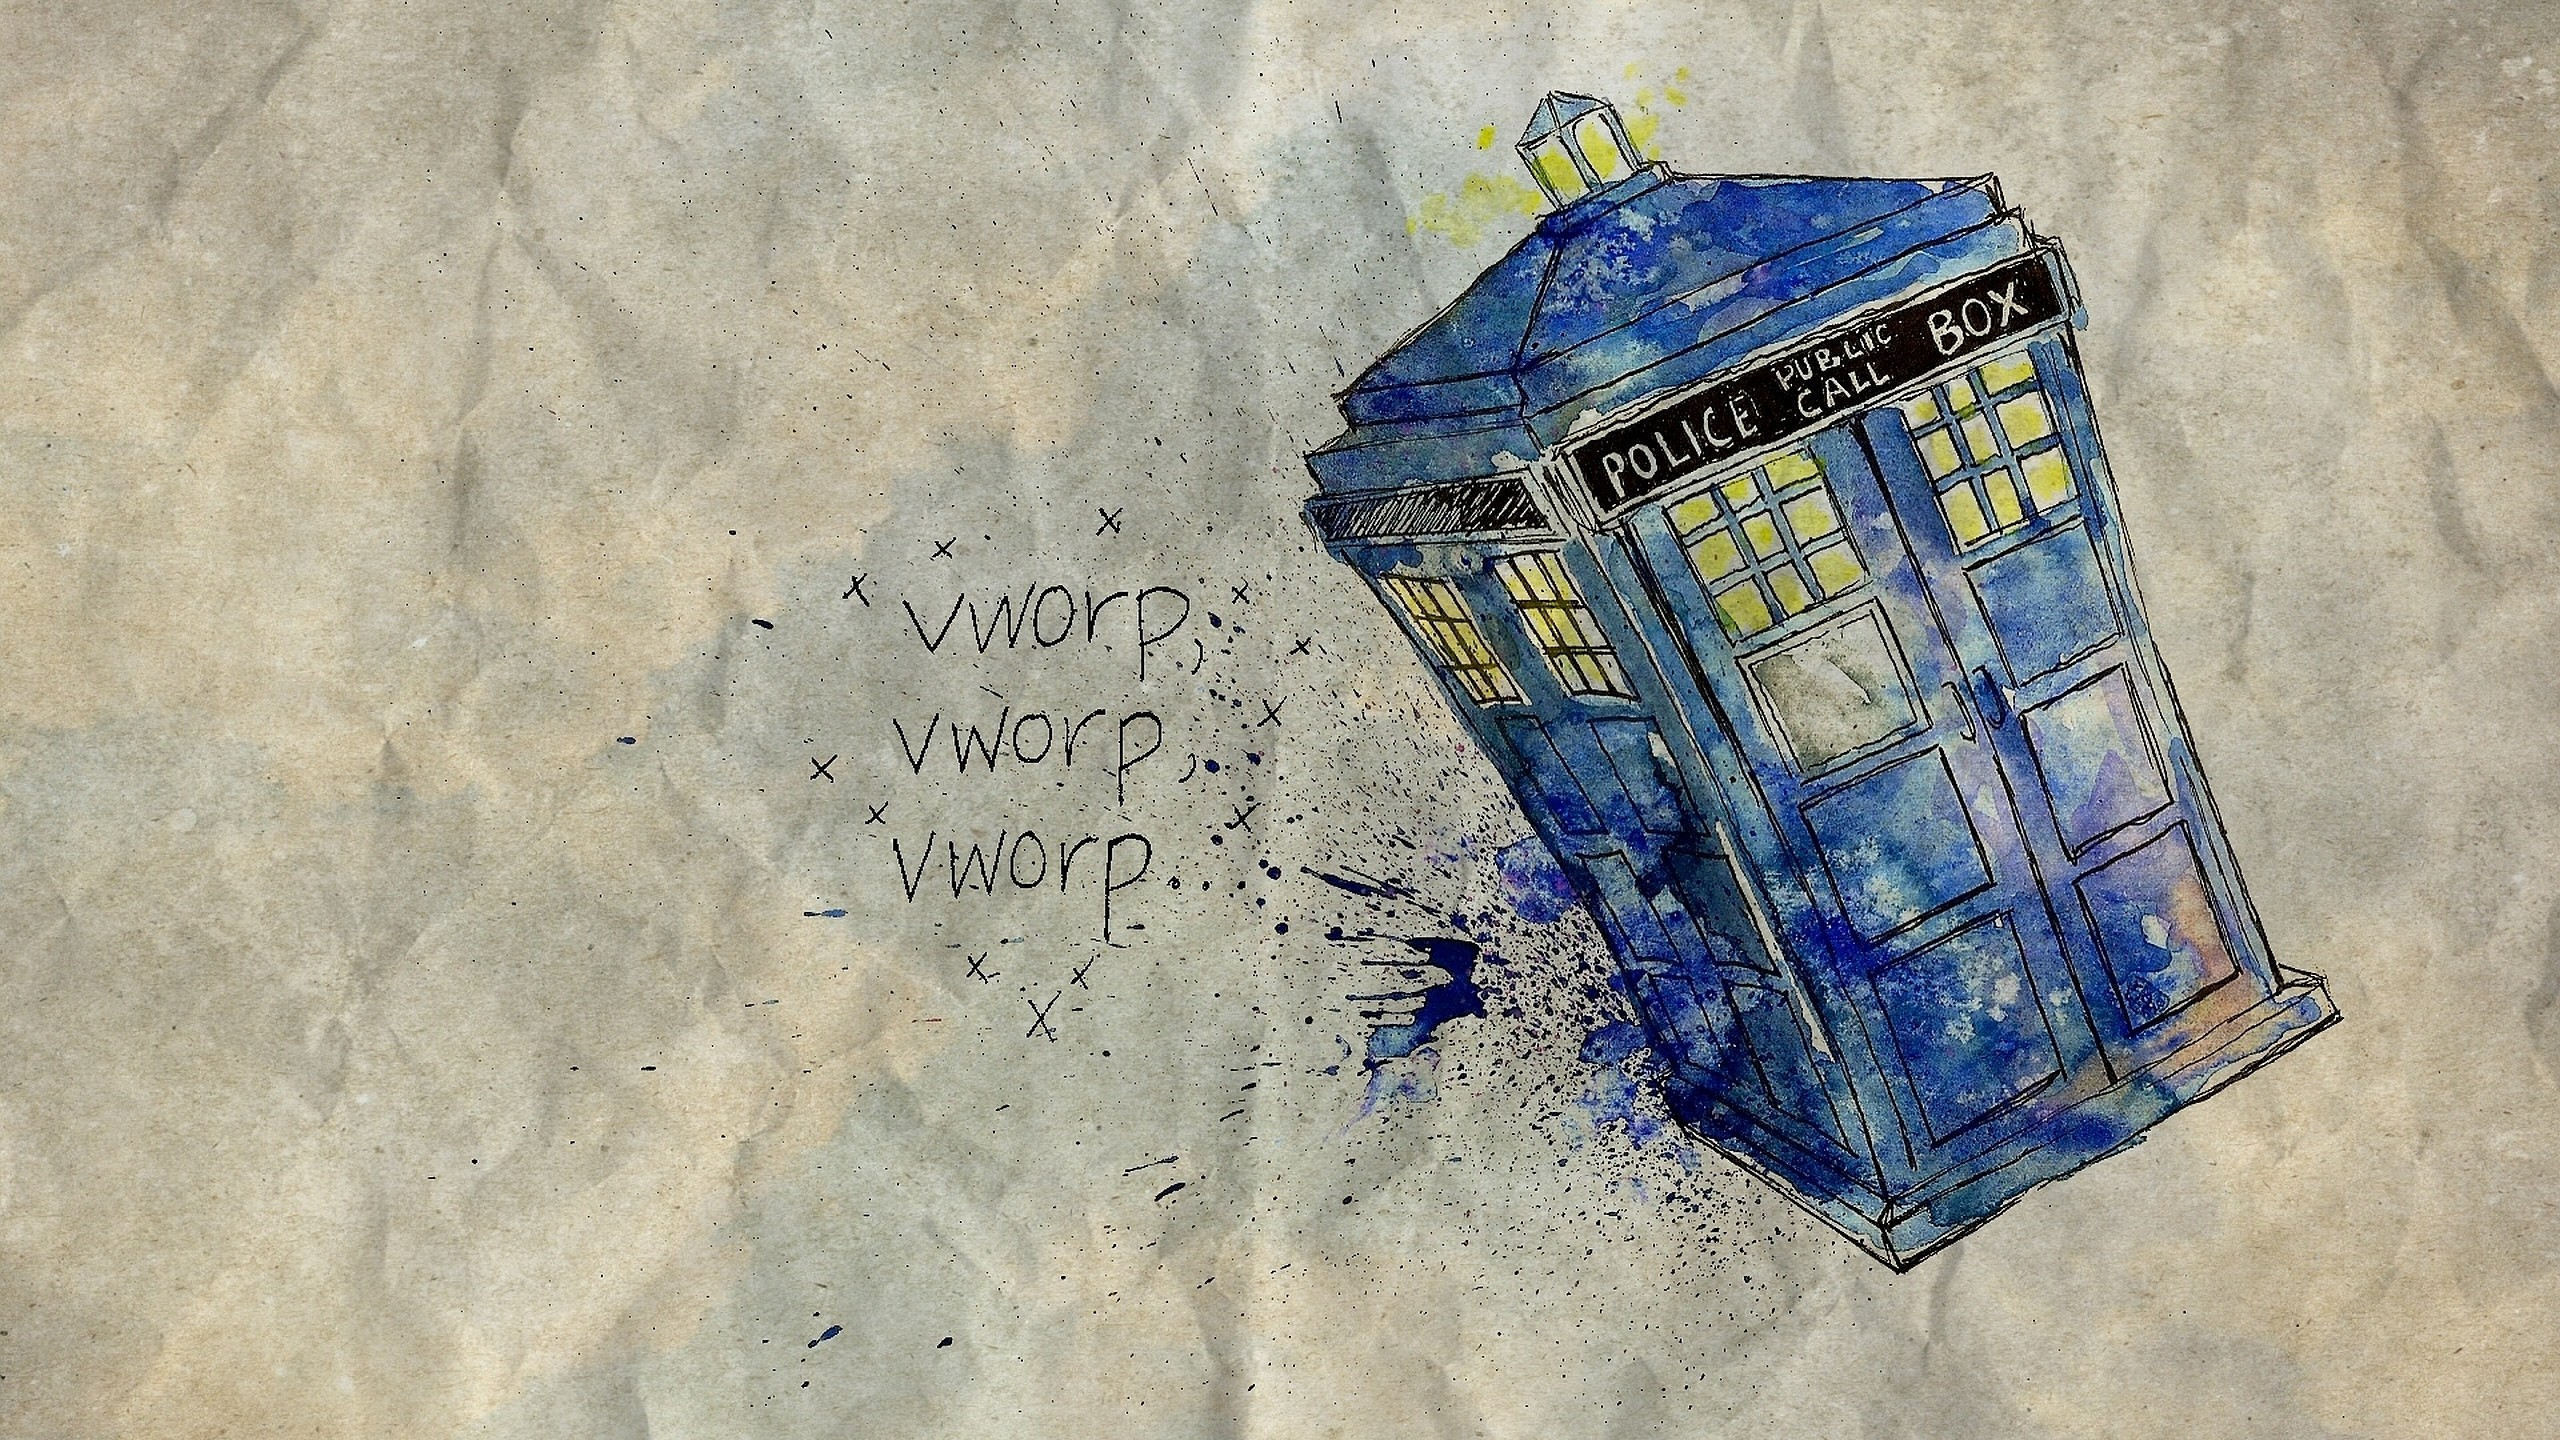 Doctor Who Wallpaper 1920x1080 (61+ images)